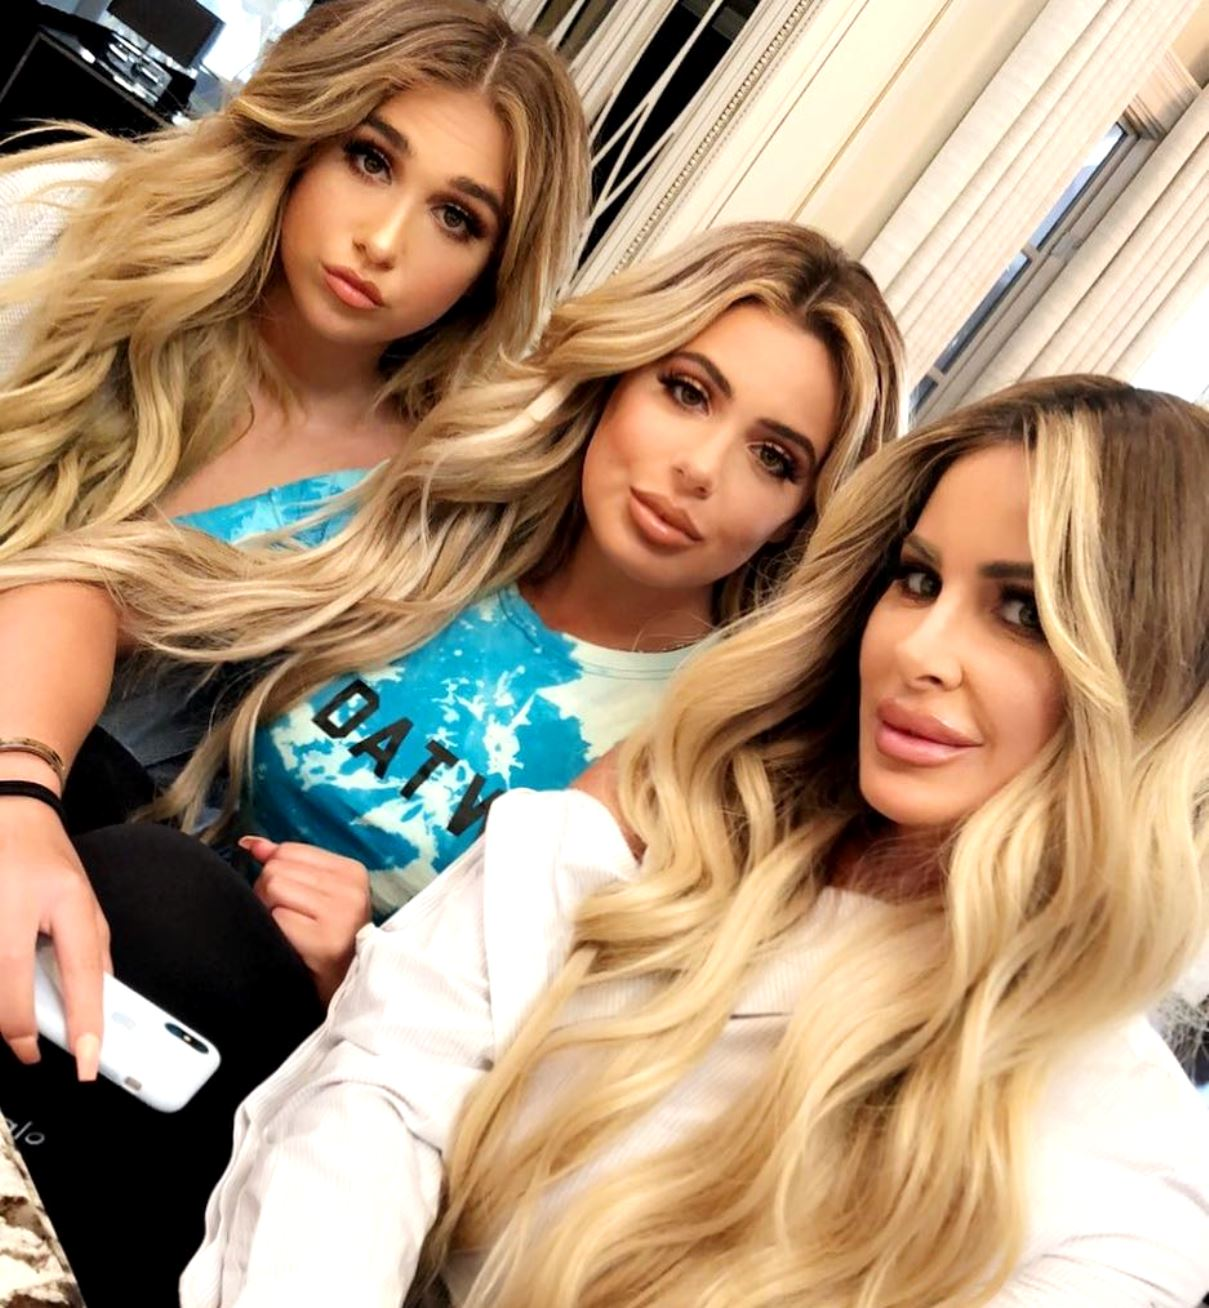 Kim Zolciak Biermann daughters Ariana and Brielle Selfie Plastic Surgery Rumors